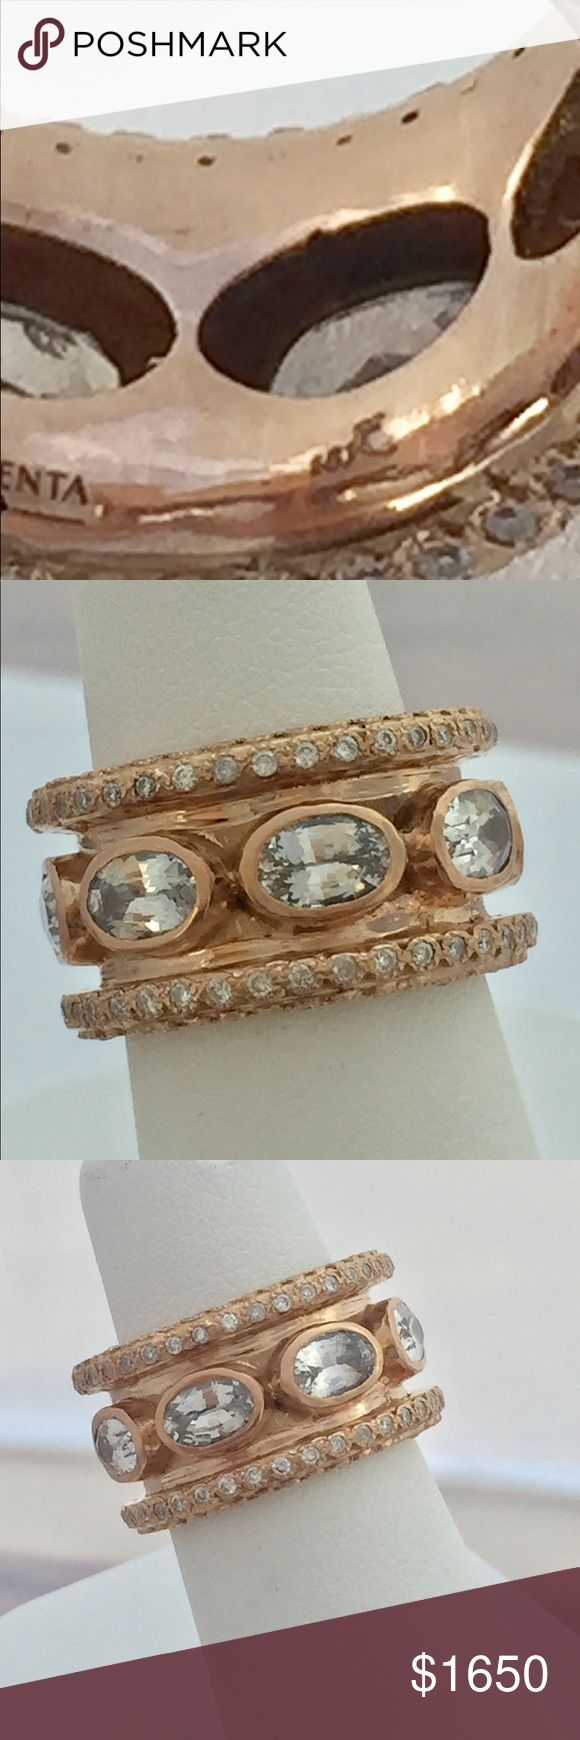 Emily Armenta 18kt RG white sapphire-diamond ring Authentic Emily Armenta 18kt rose gold ring. 4 rows of .01 pointers, each row has .25 ctw for a total of 1.00 in diamonds surrounding the ring & oval white sapphires in the center of the band. Band's wide so although it's a 5.5 size it wears more like a 5. Bought at Neiman Marcus NYC for my wife. She's taken excellent care of it so it's like new. See last photo of a ring similar but not 18kt or 1.00 ctw like hers. Cannot be resized. Armenta…